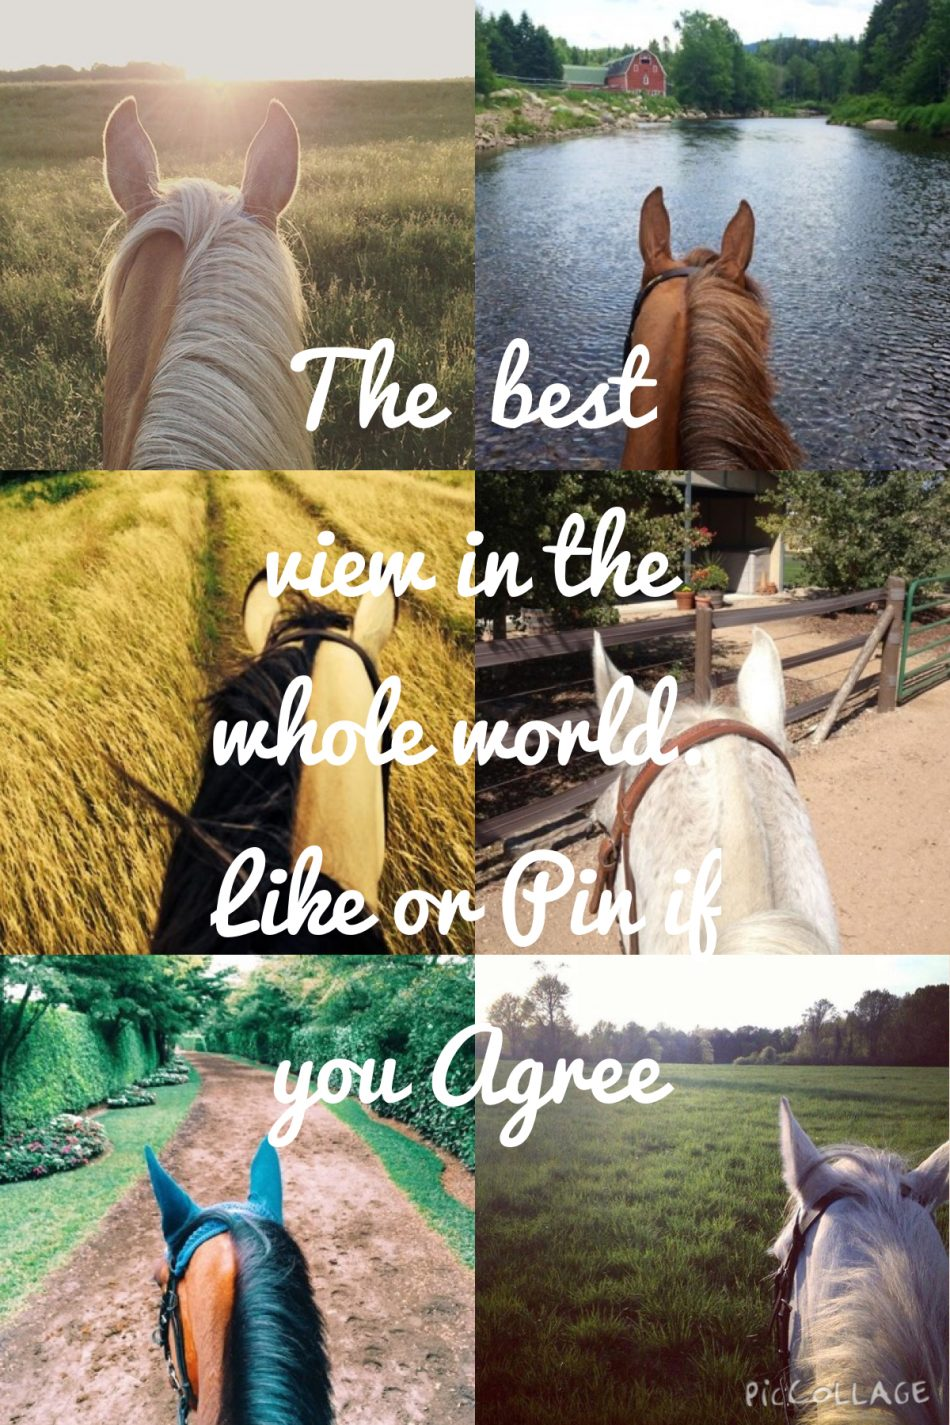 HOW DOES RIDING HORSES MAKE YOU FEEL?? COMMENT BELOW!!